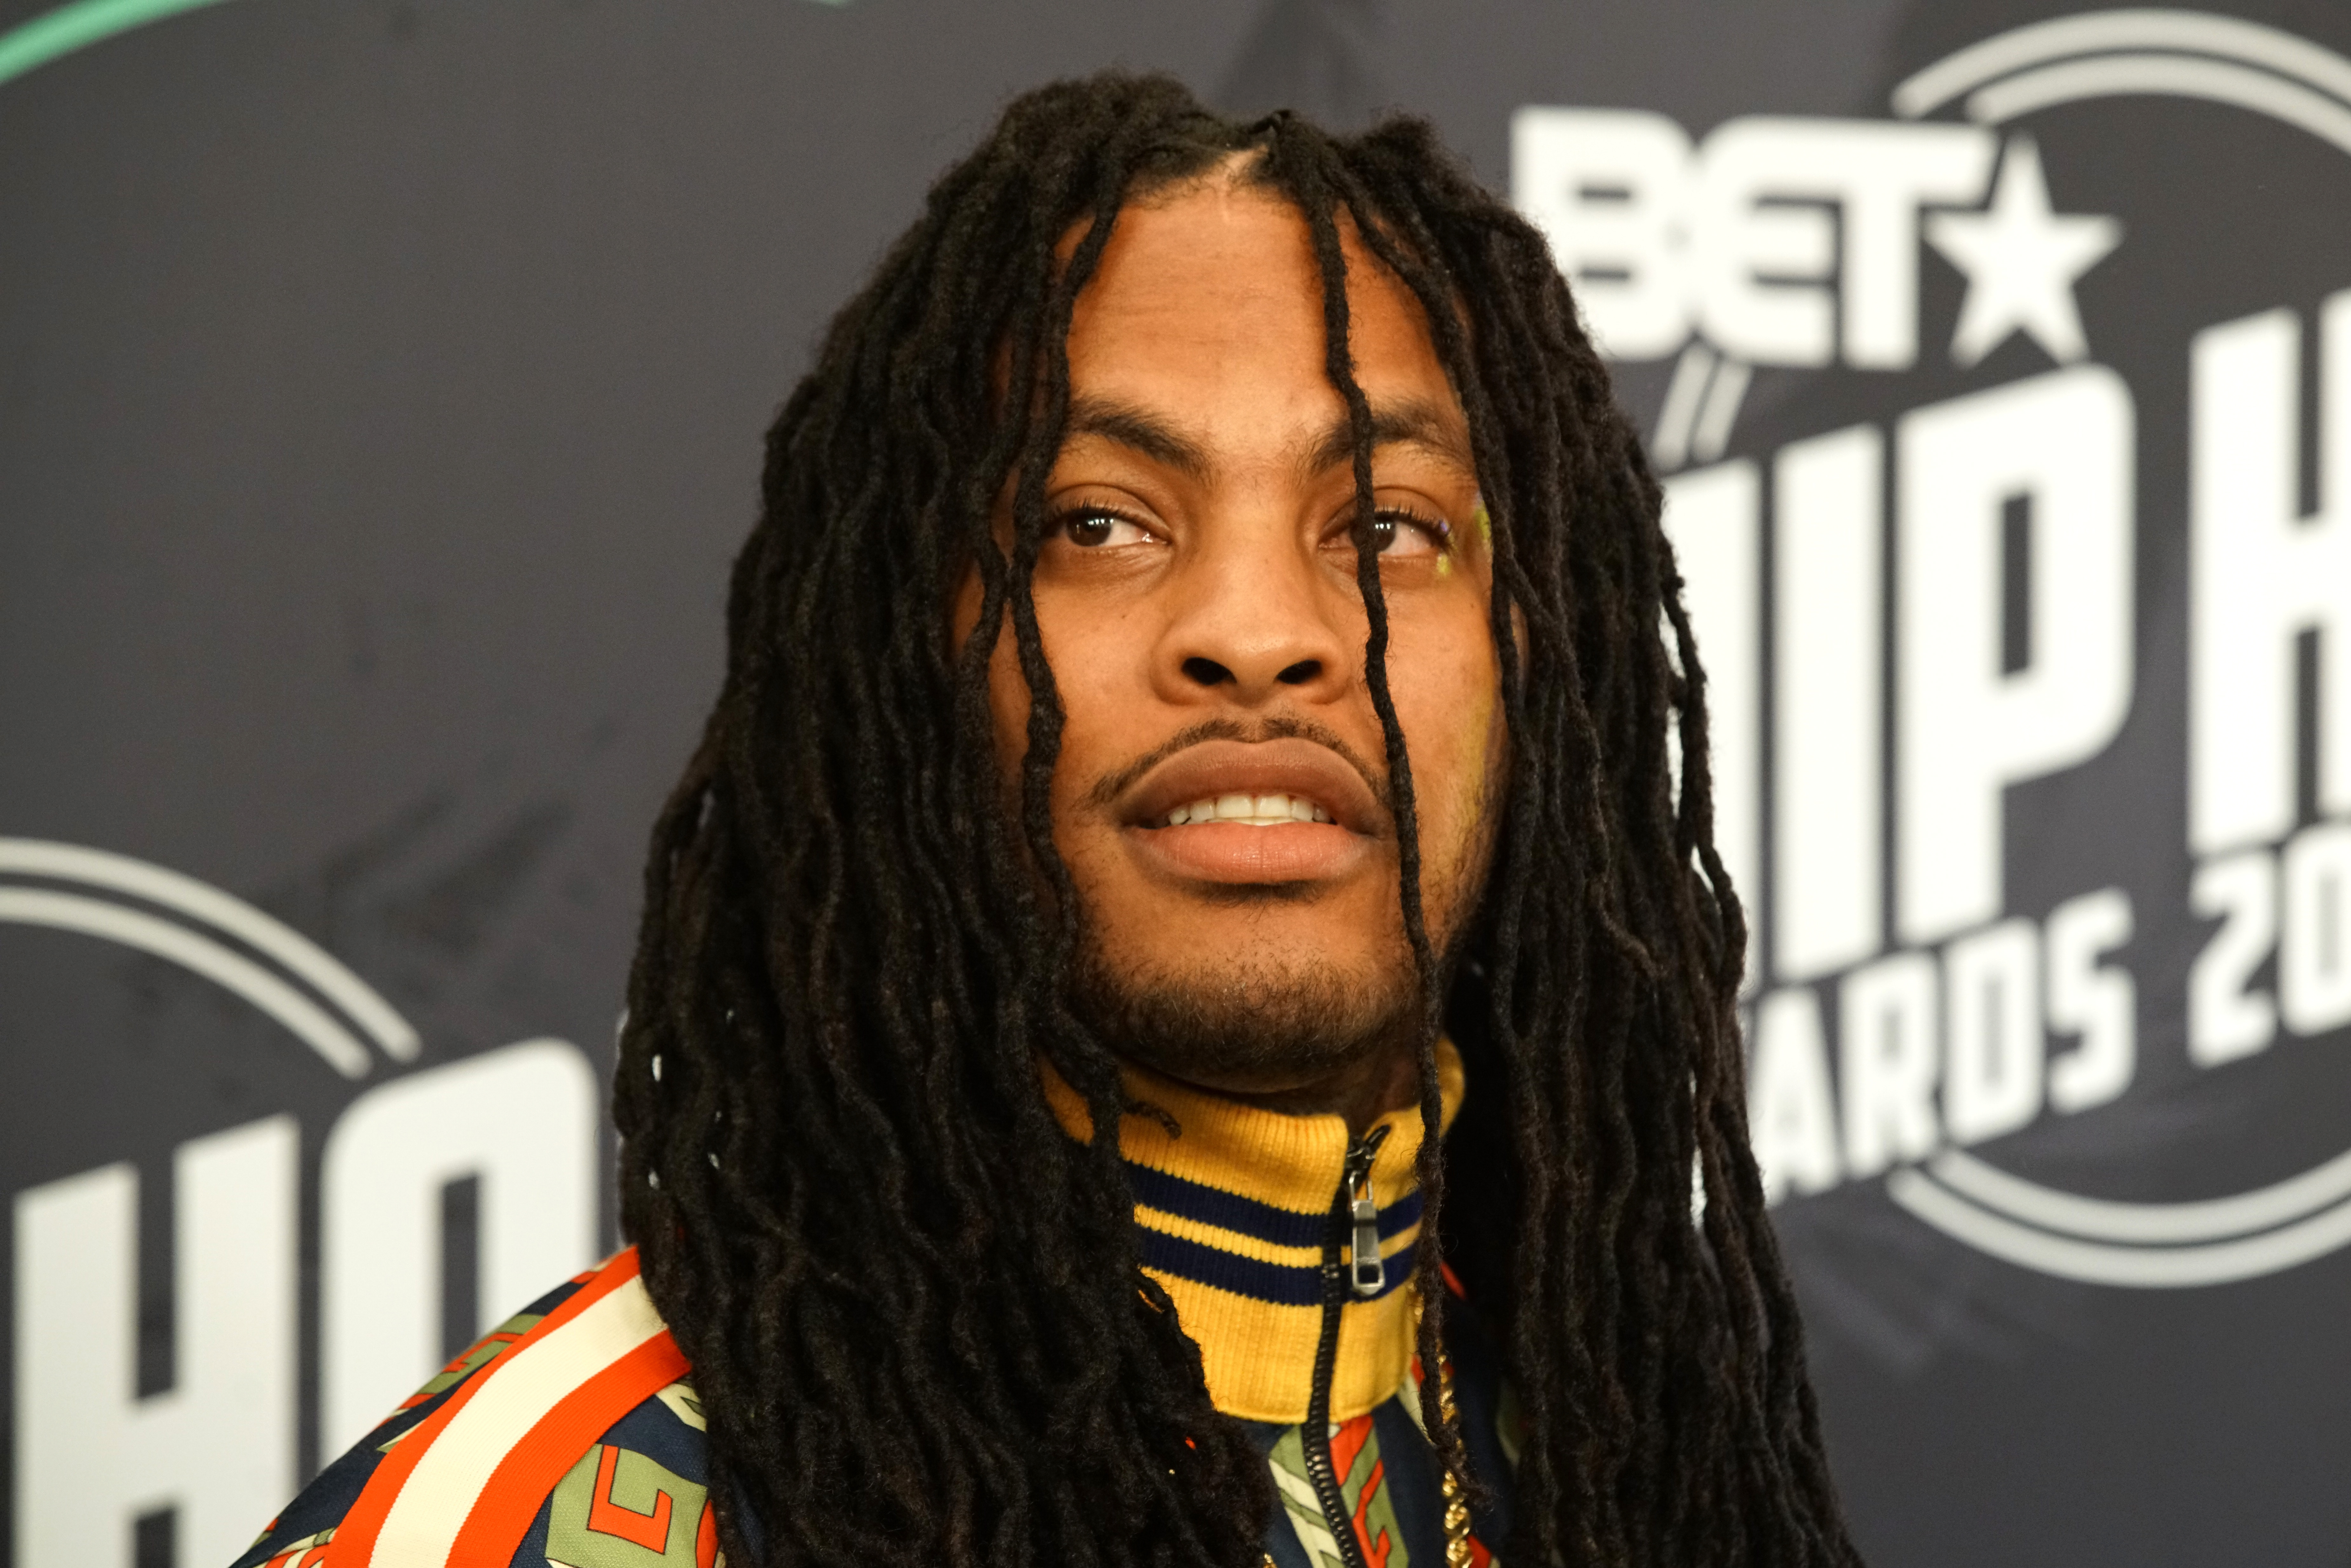 Rapper Waka Flocka attends the BET Hip Hop Awards 2017 at The Fillmore Miami Beach at the Jackie Gleason Theater on October 6, 2017 in Miami Beach, Florida. (Photo by Bennett Raglin/Getty Images for BET )